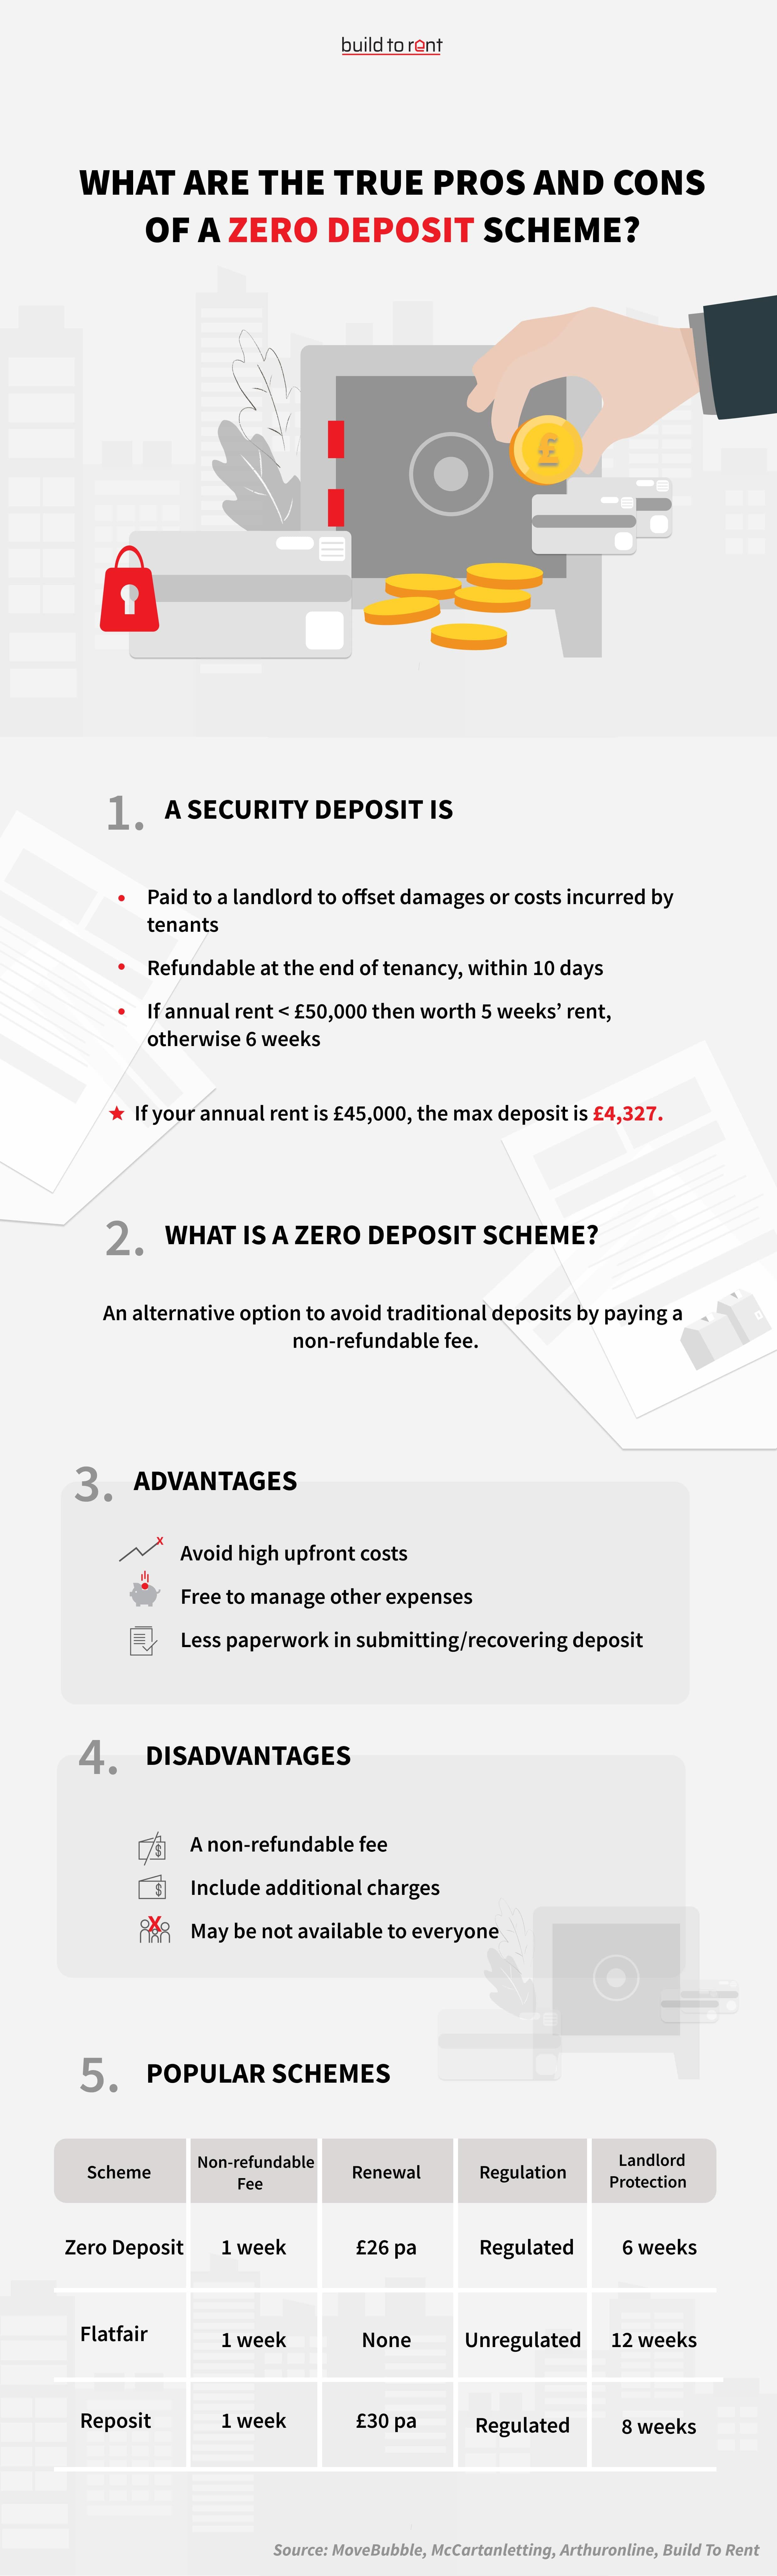 What Are The True Pros And Cons Of a Zero Deposit Scheme?